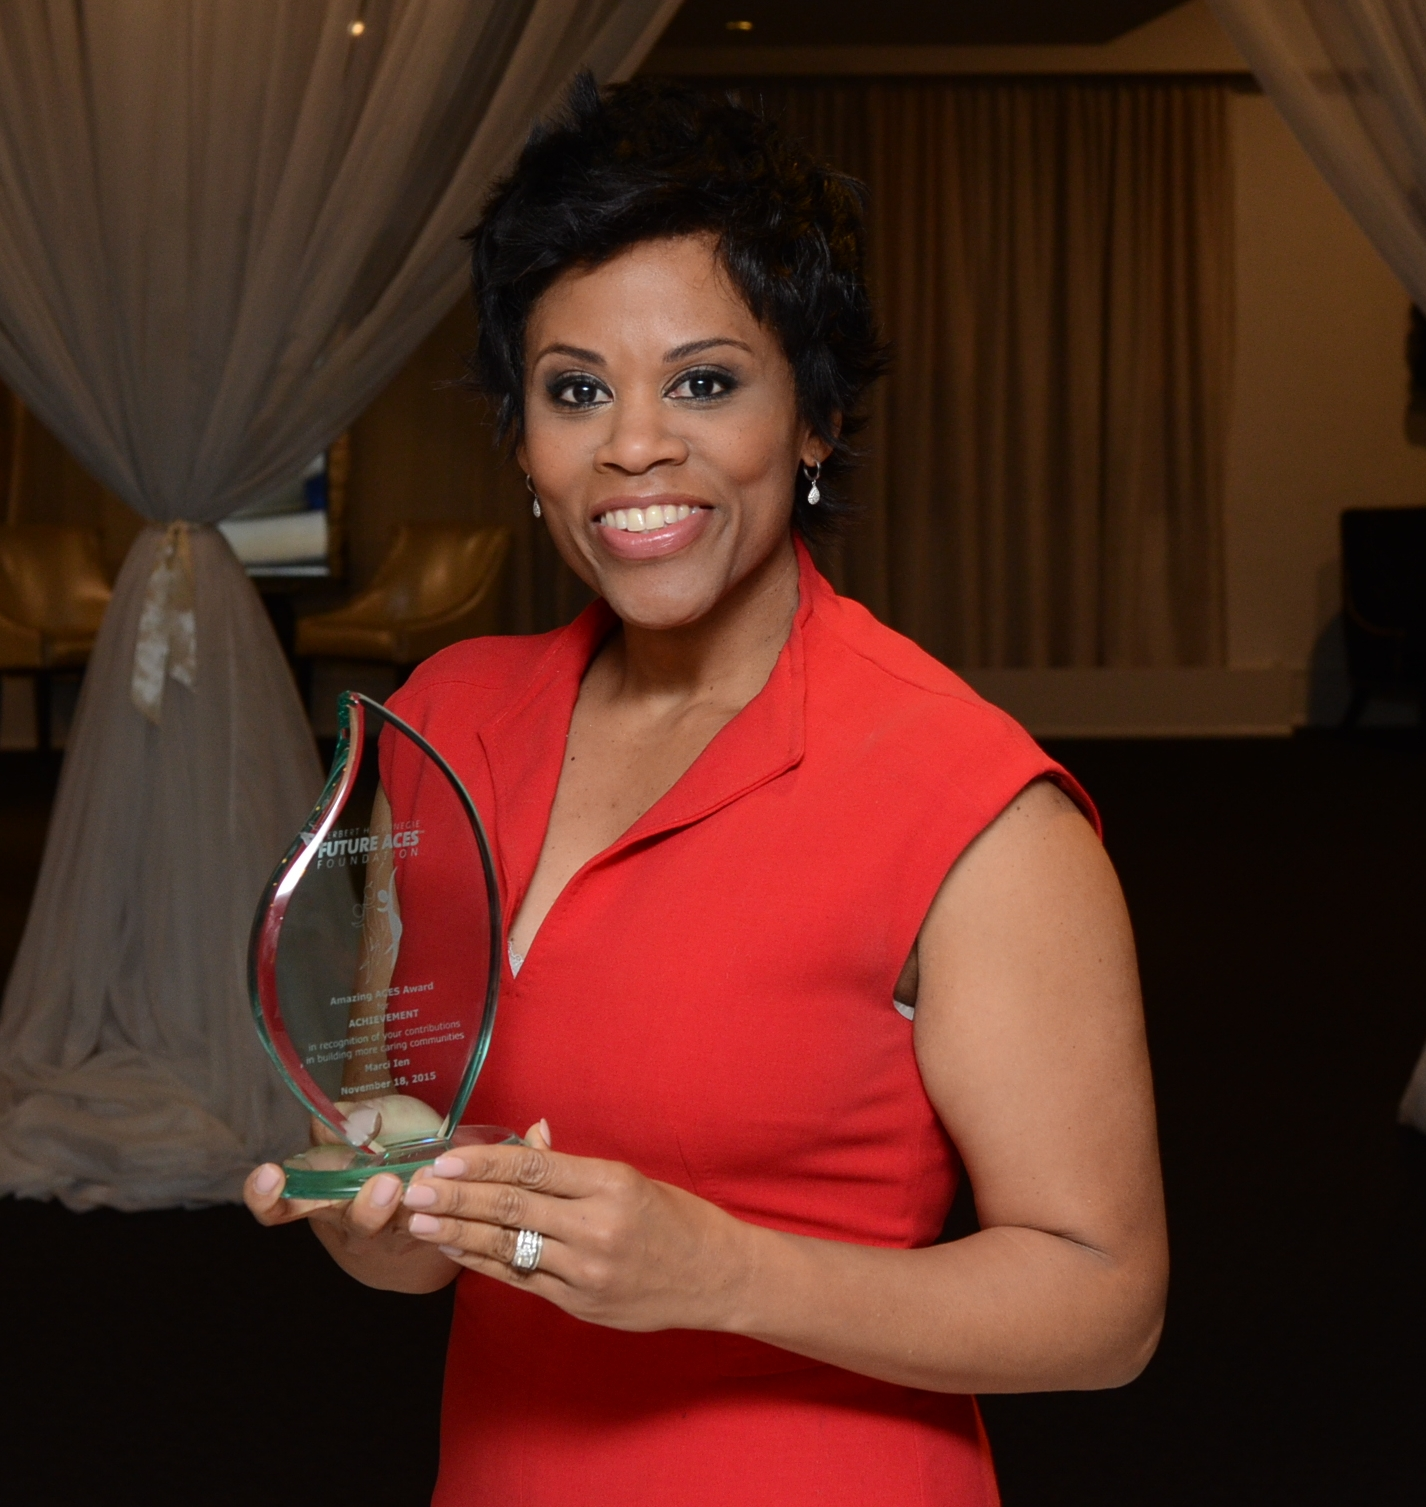 Marci Ien was presented with a Future Aces Award for journalism excellence